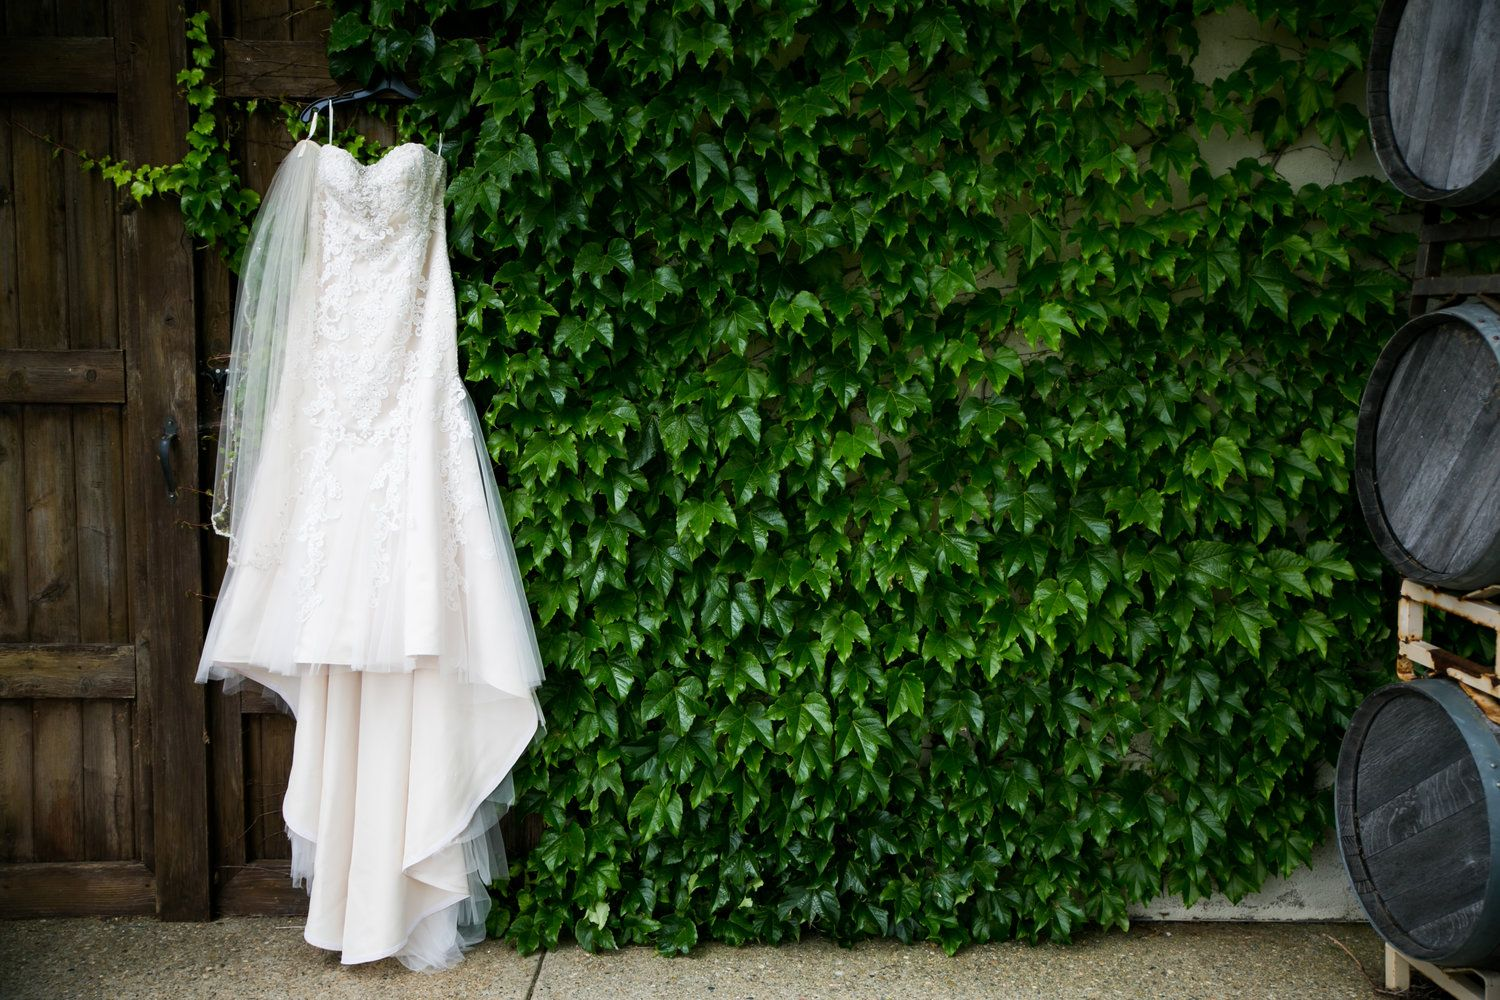 Wedding dress photographed at Avio Winery, Sutter Creek, CA. Sutter Creek Wedding, photography by Kept In Time Photography.